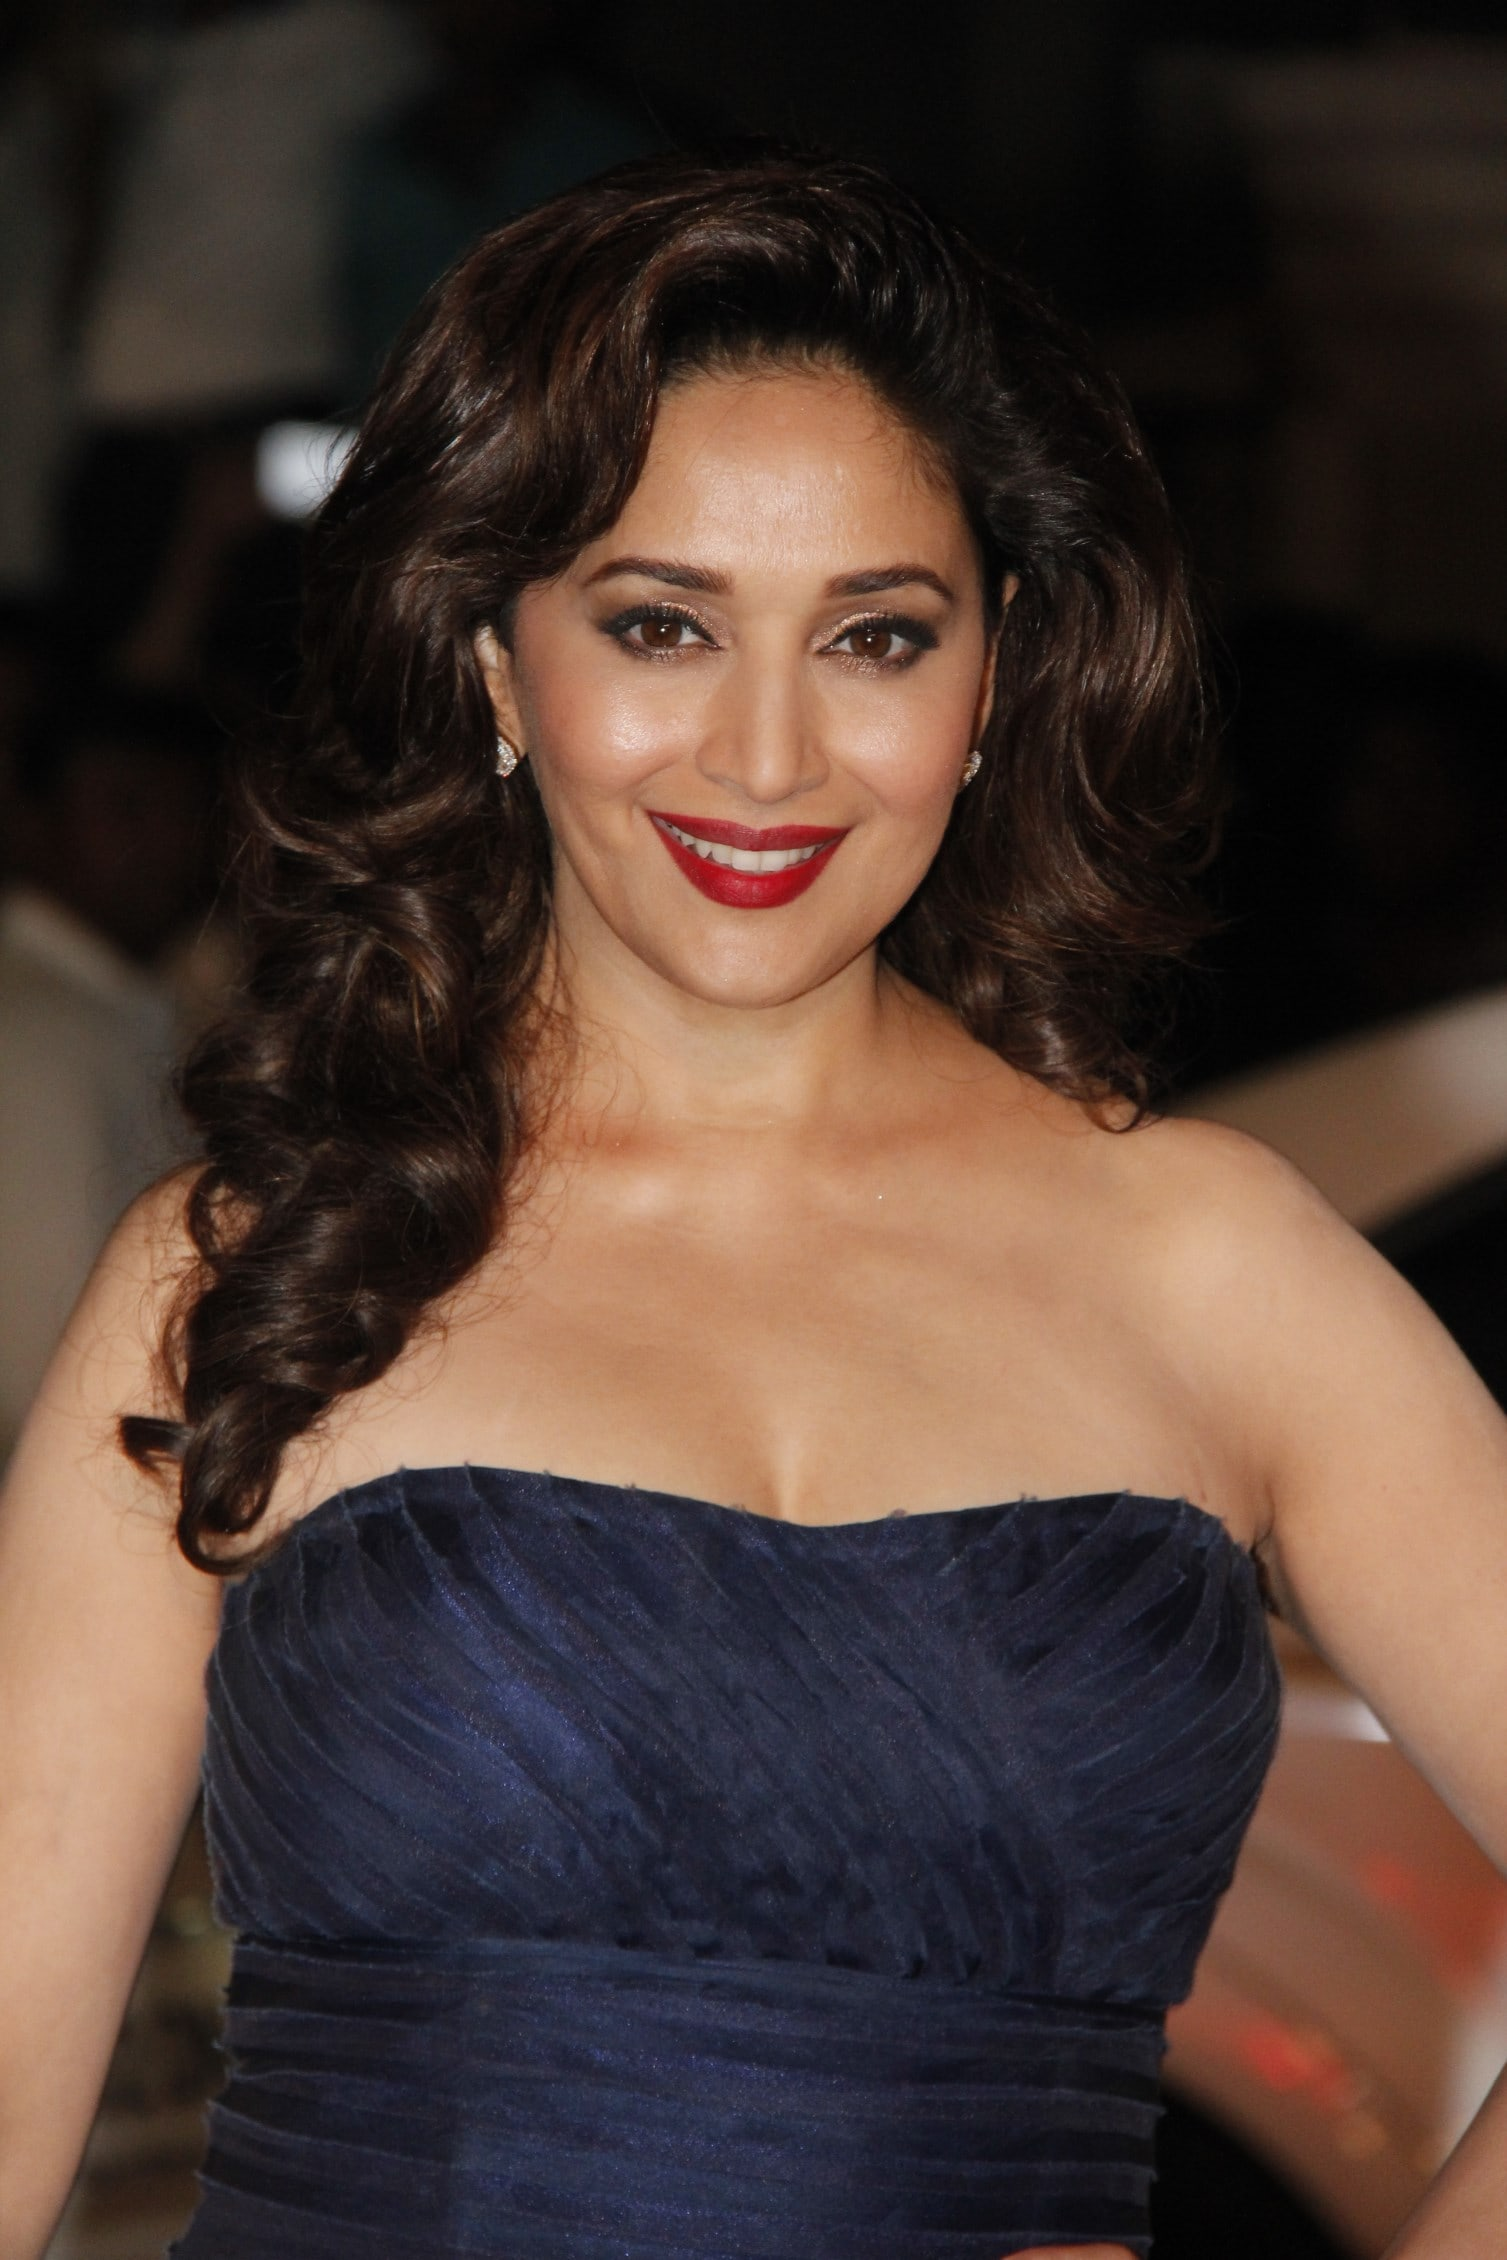 Madhuri Dixit For mobile